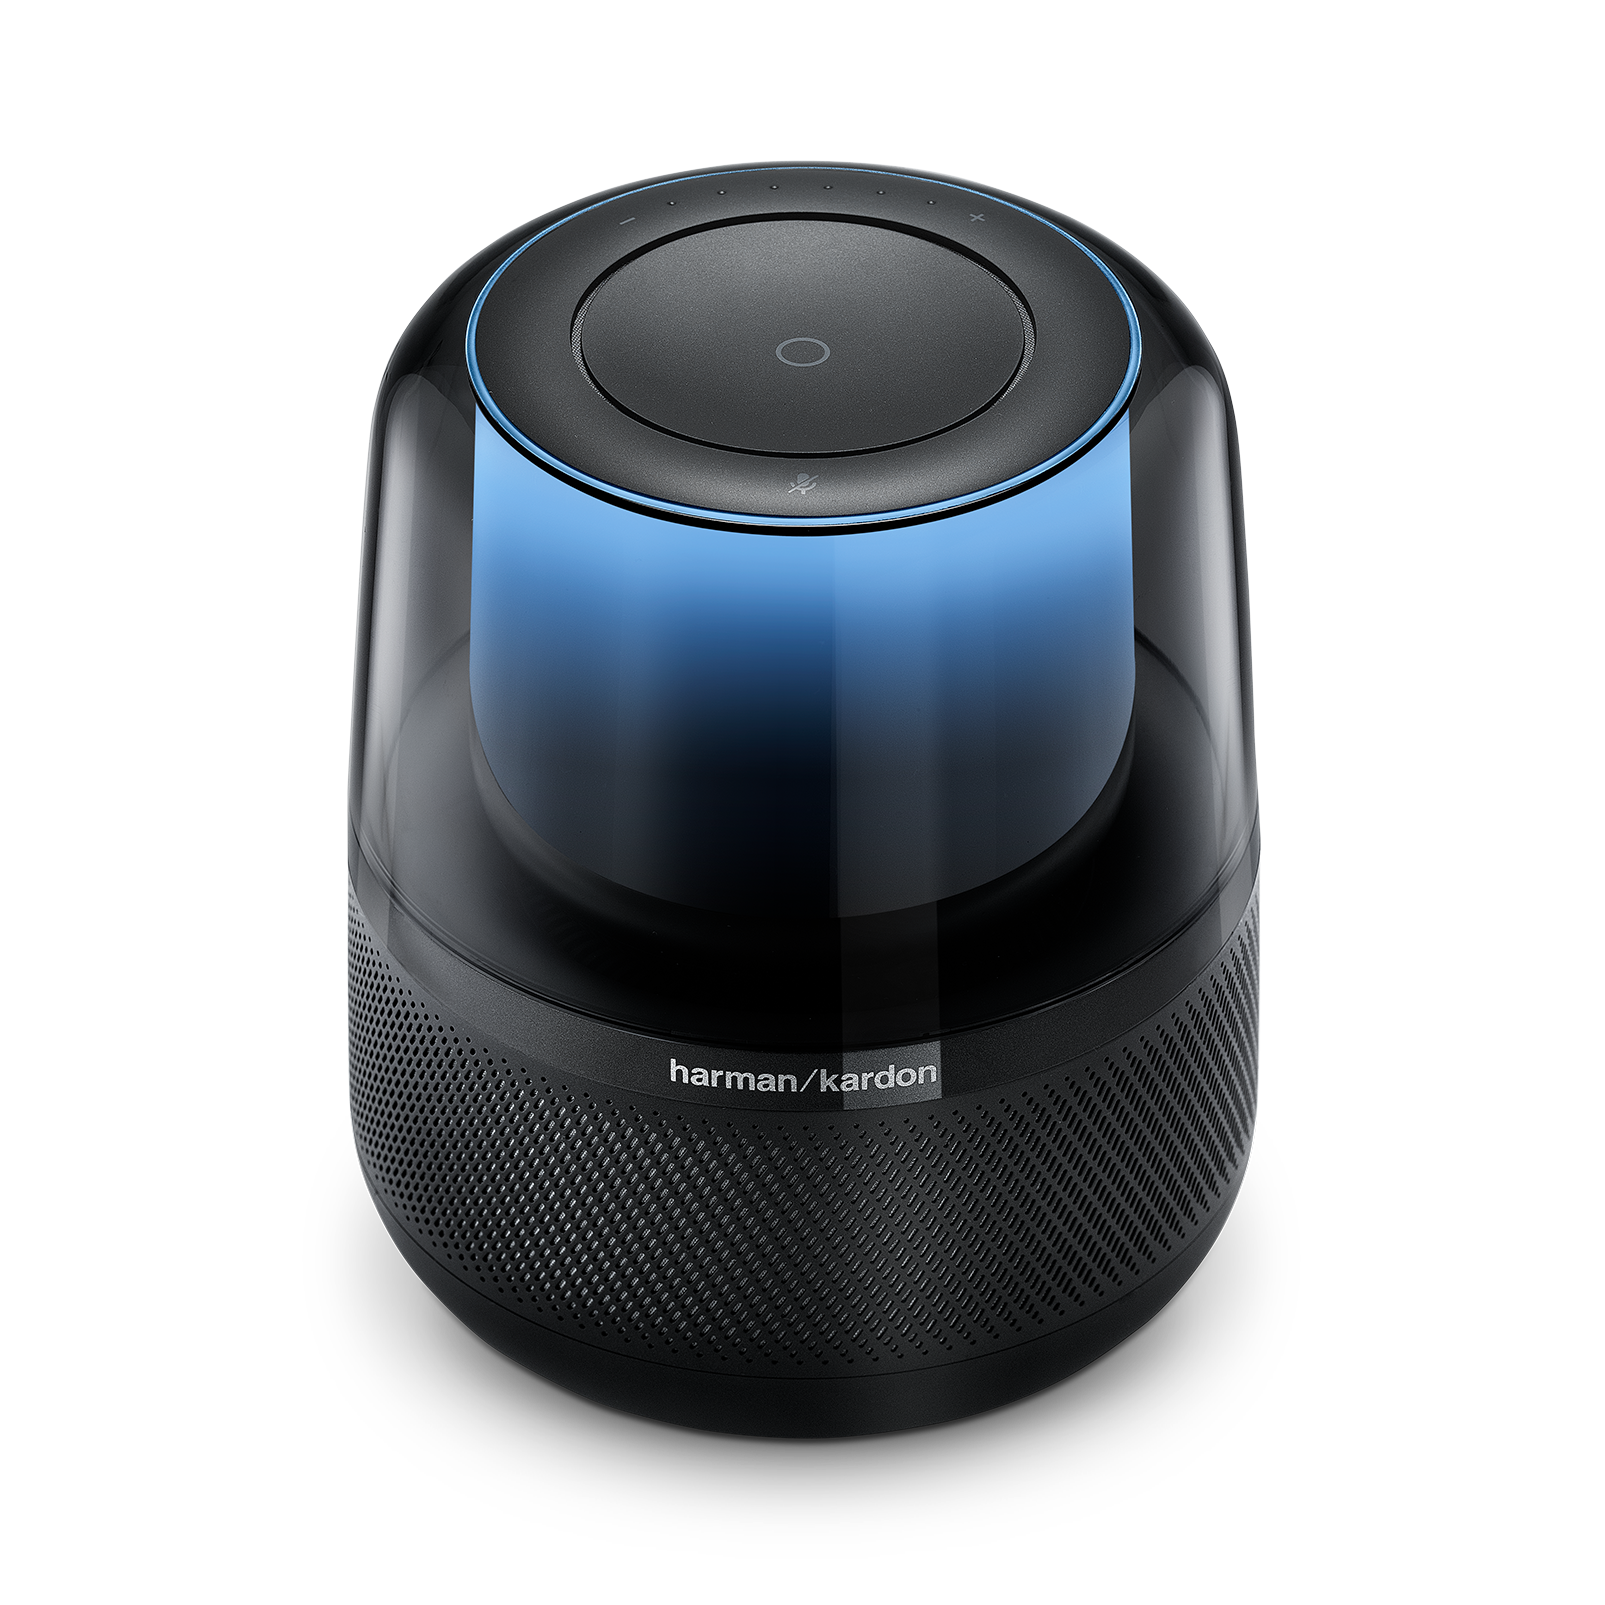 harman kardon allure voice activated speaker. Black Bedroom Furniture Sets. Home Design Ideas